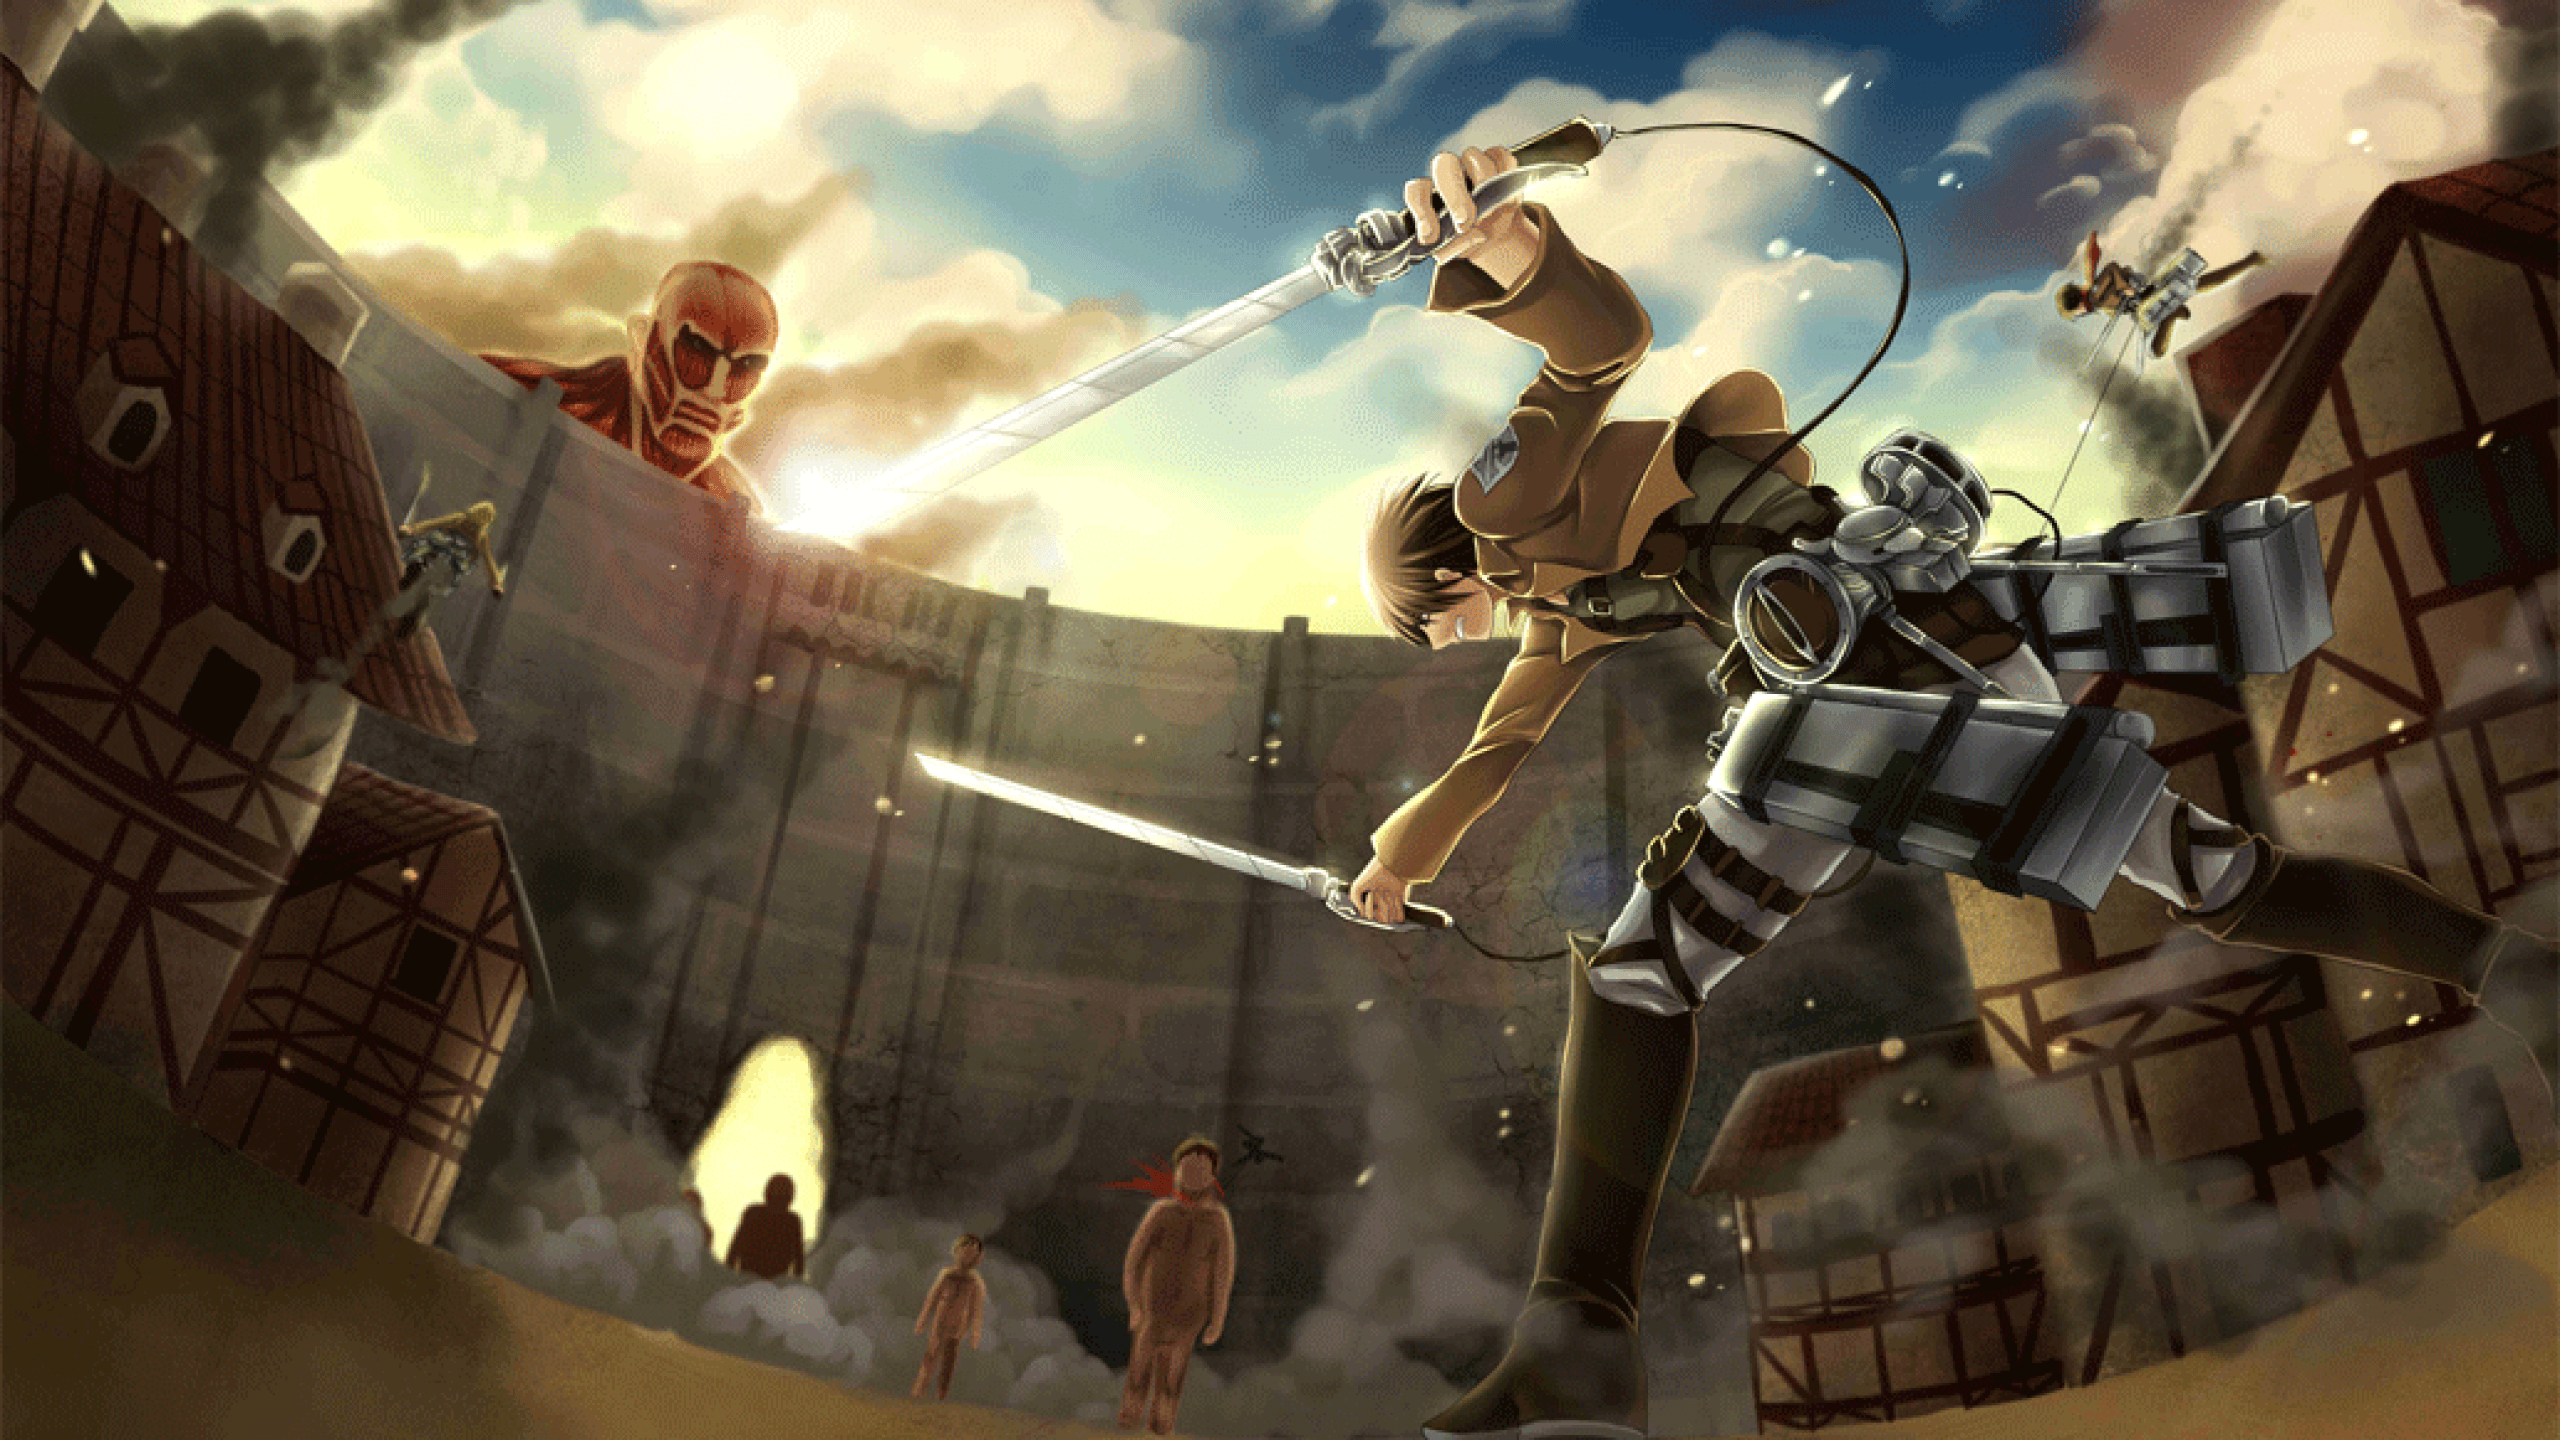 Beautiful Wallpaper High Quality Attack On Titan - wp2123967  Photograph_29729.png